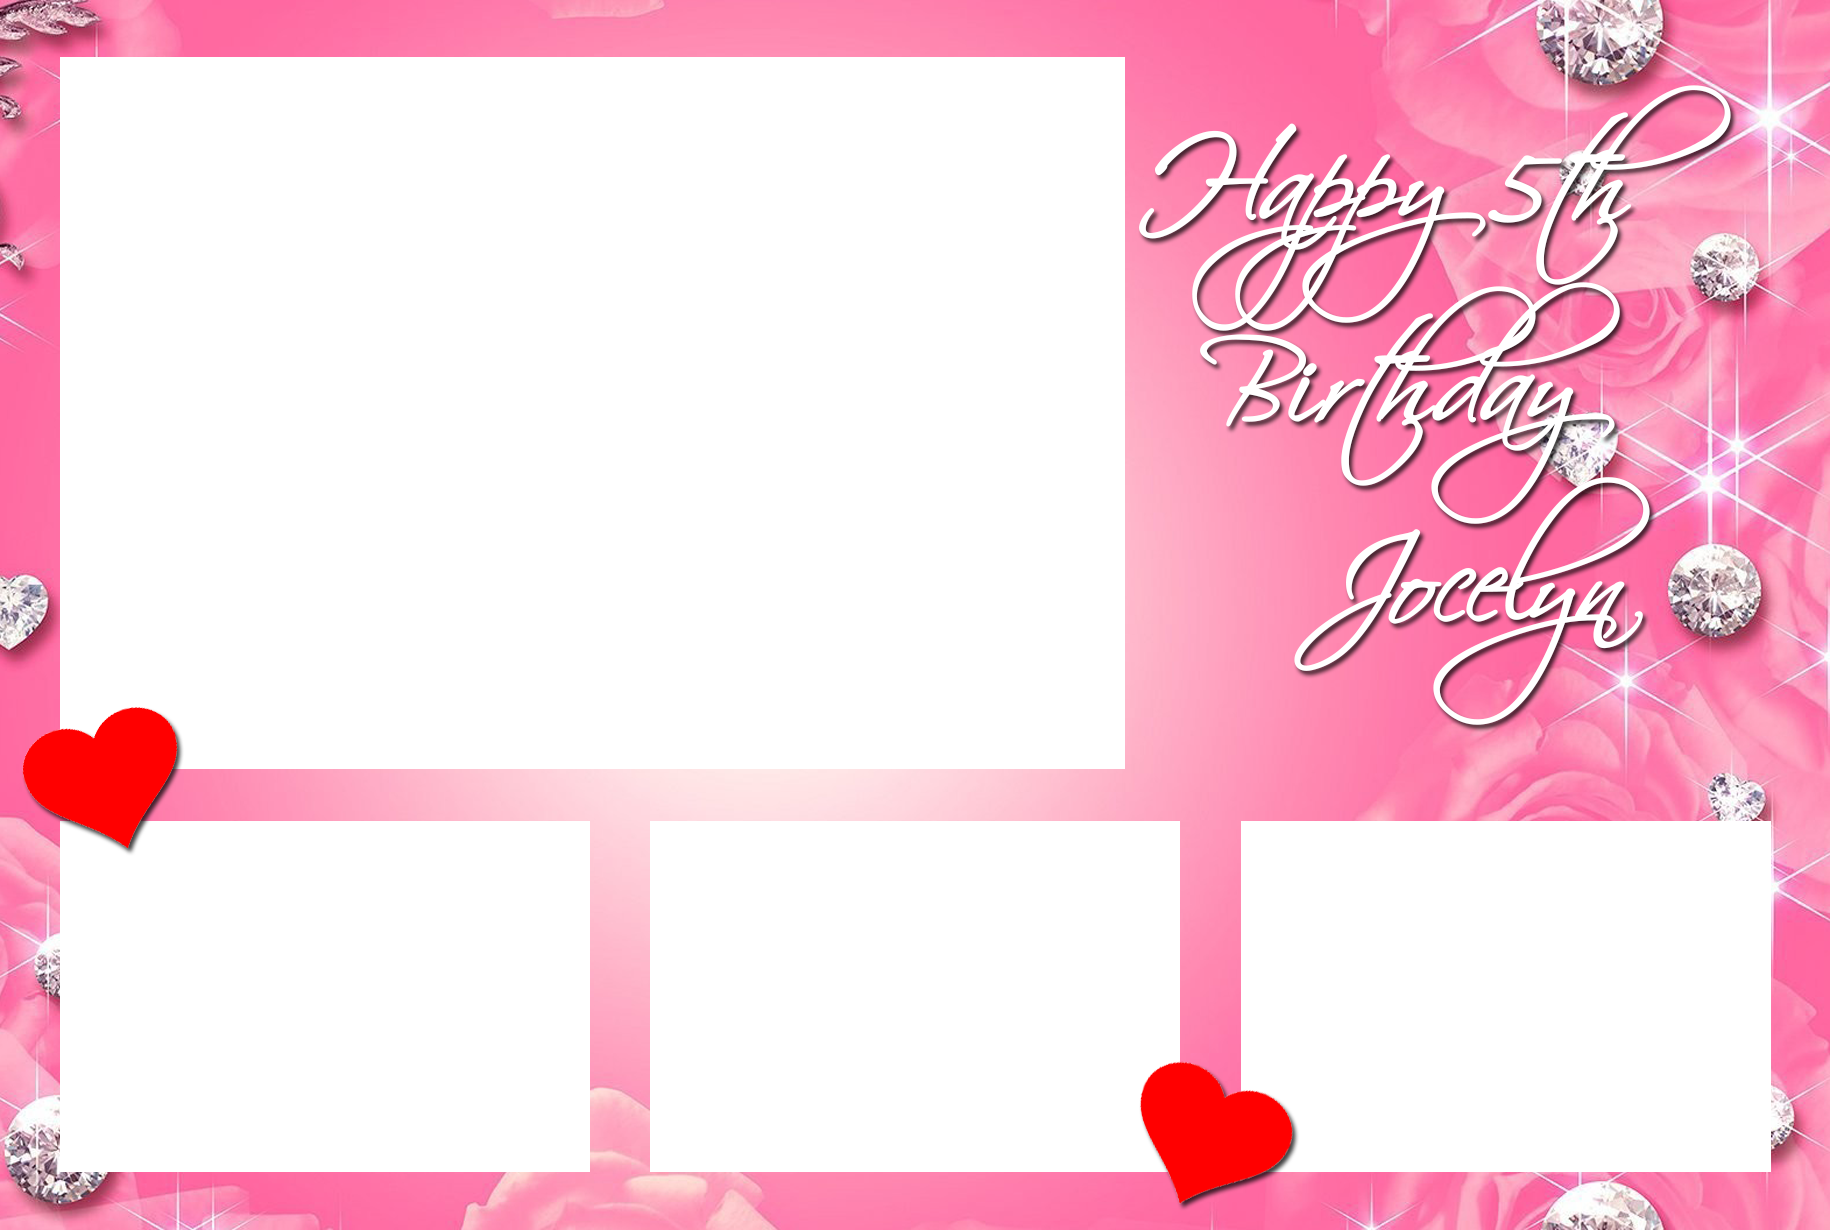 birthday photo booth layout 2